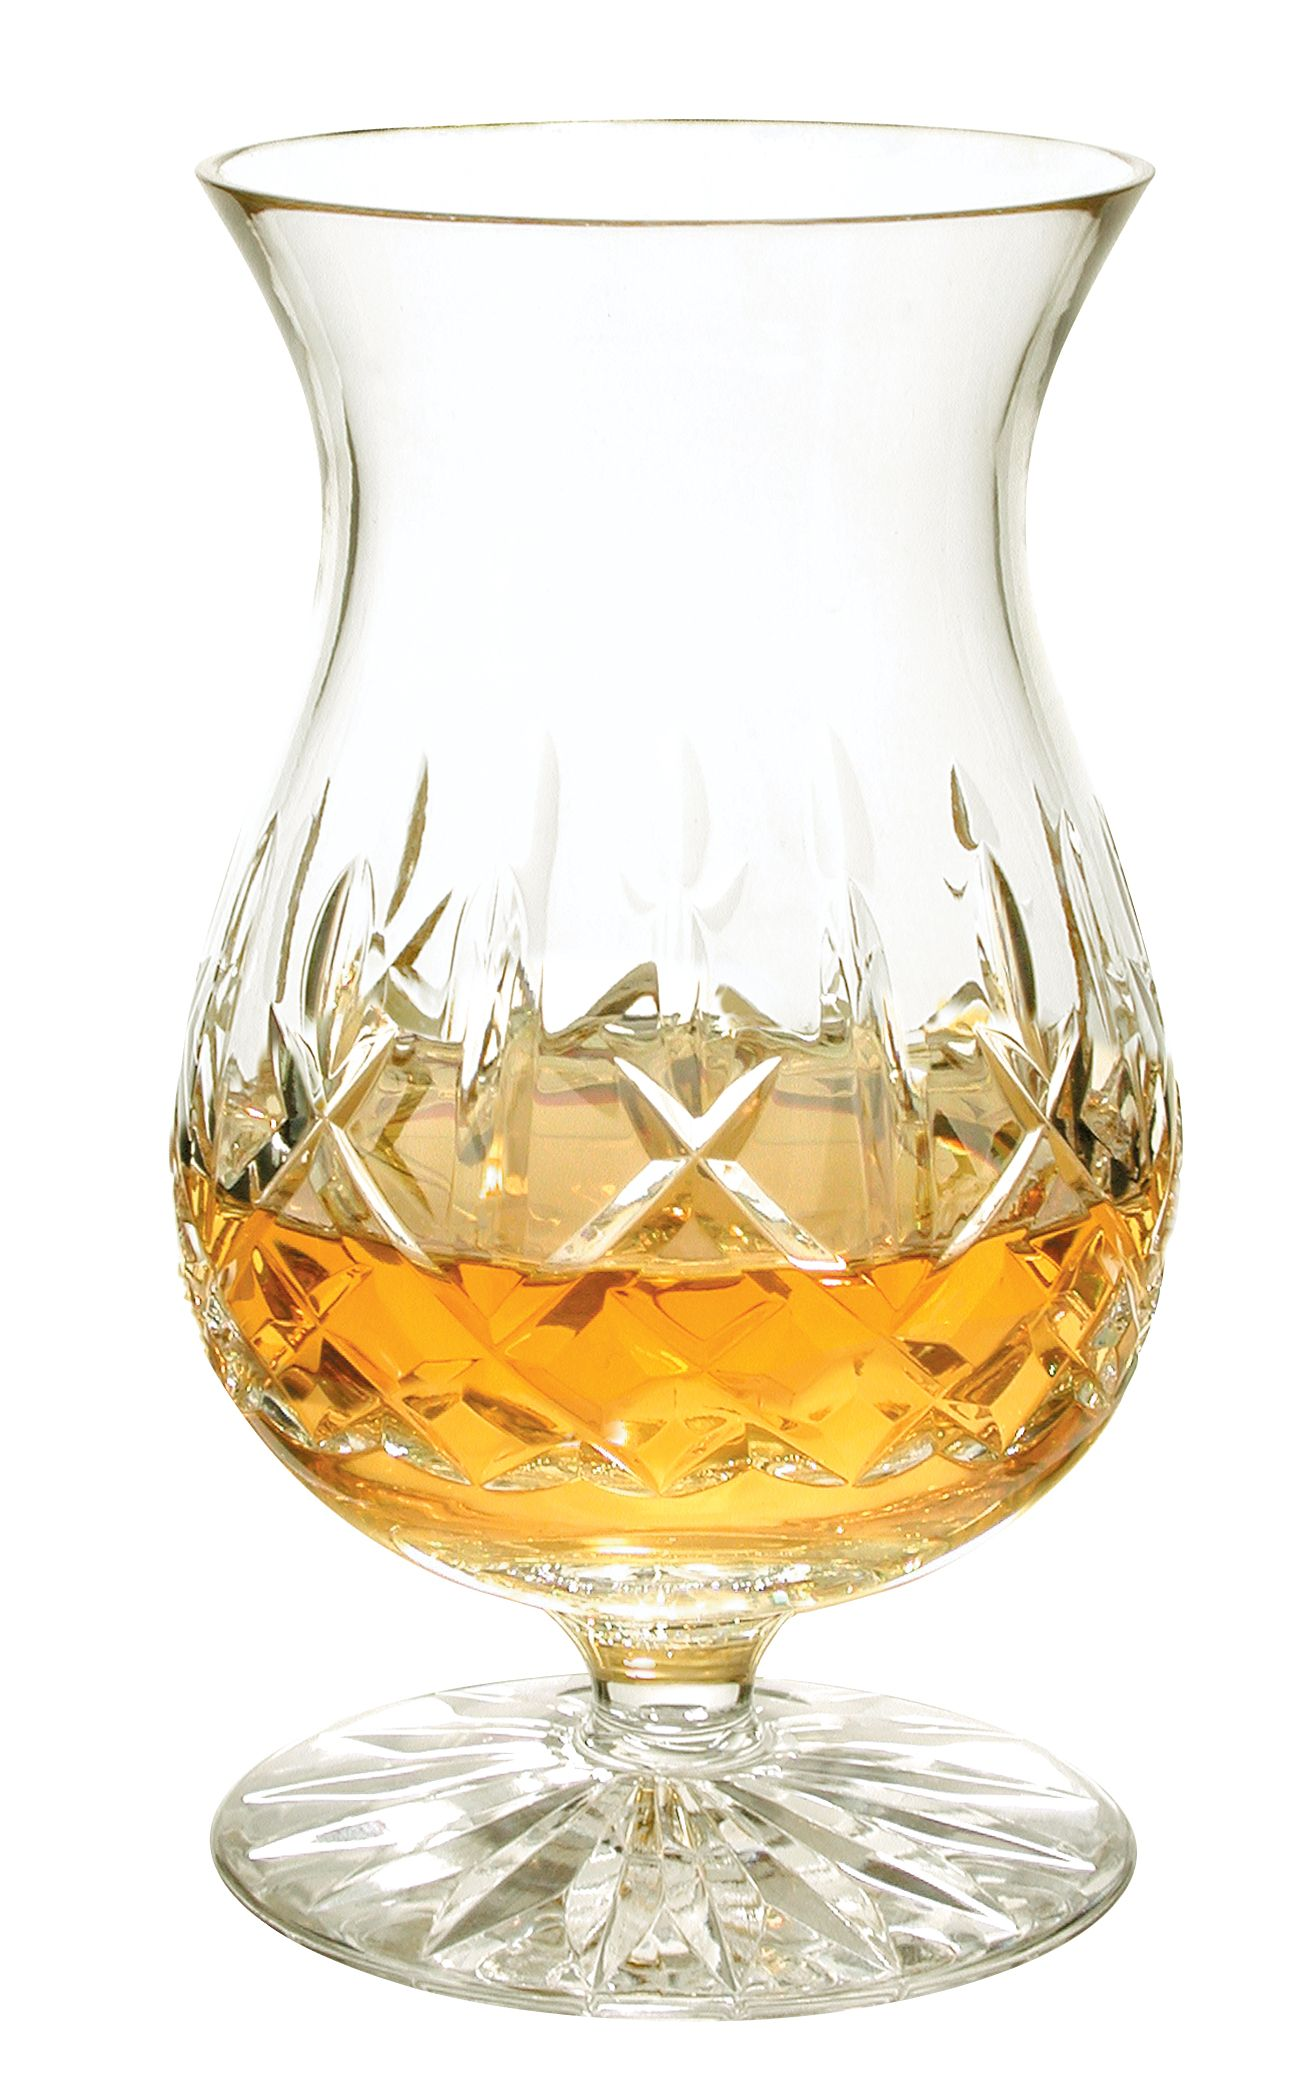 Single Malt Scotch Glass  A great addition to any bar made by a great company. I have 4 for daily use - every great Scotch deserves to be handled with dignity!